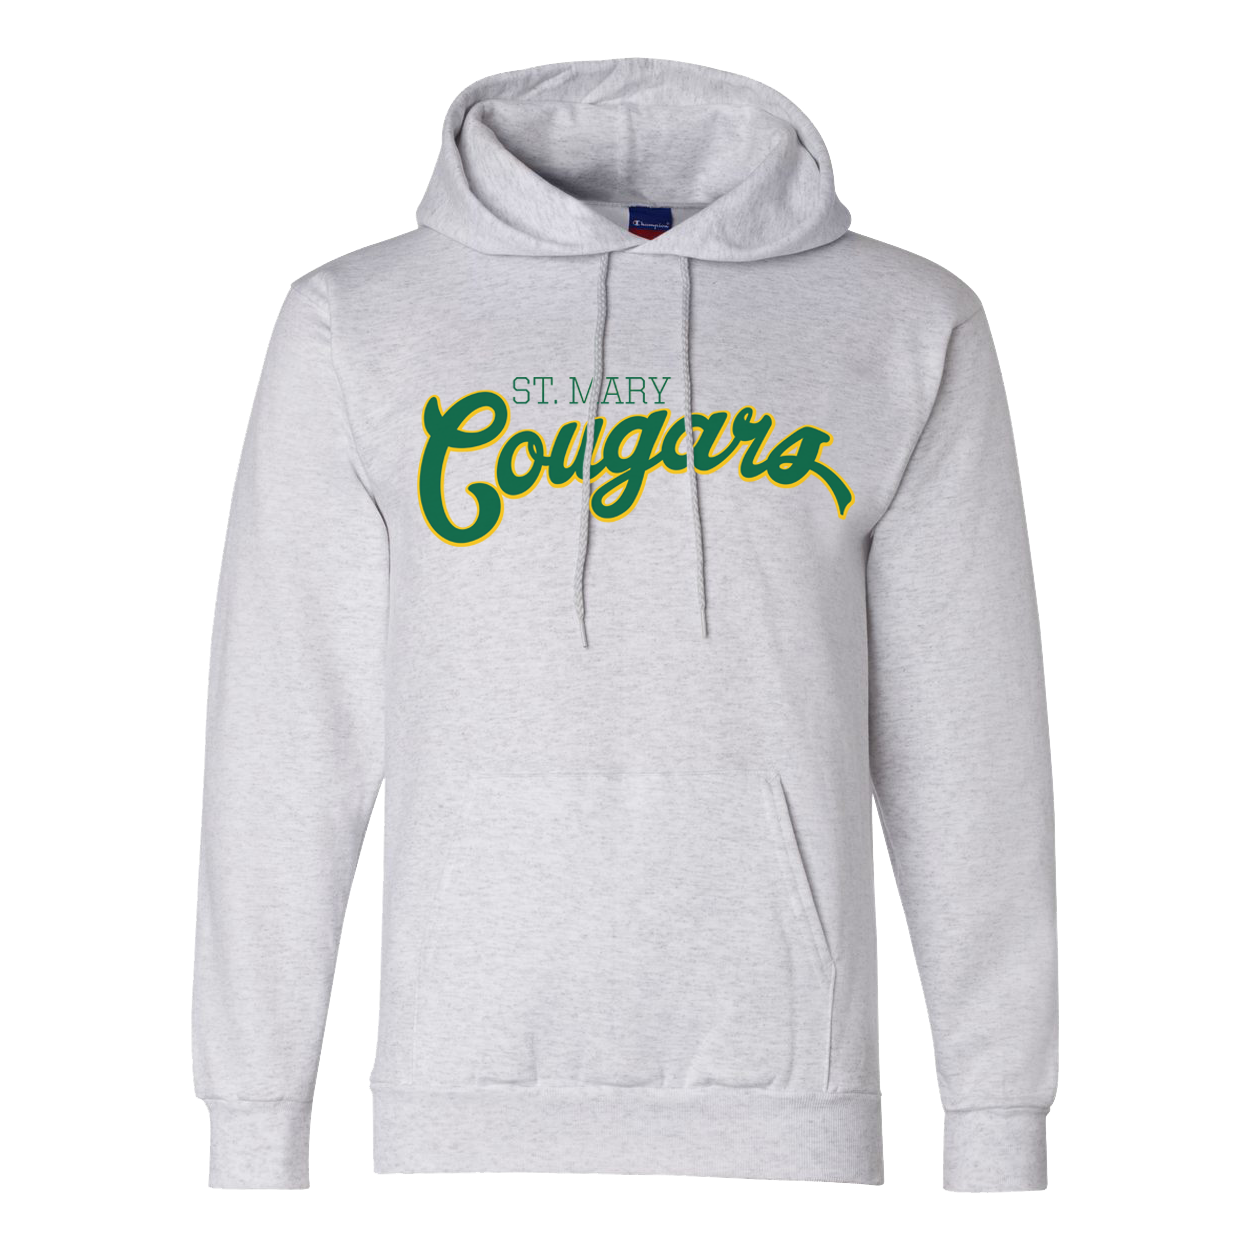 f5b2999679d1 St. Mary School Olde Script Champion Adult 9 oz. Double Dry Eco Pullover  Hoodie